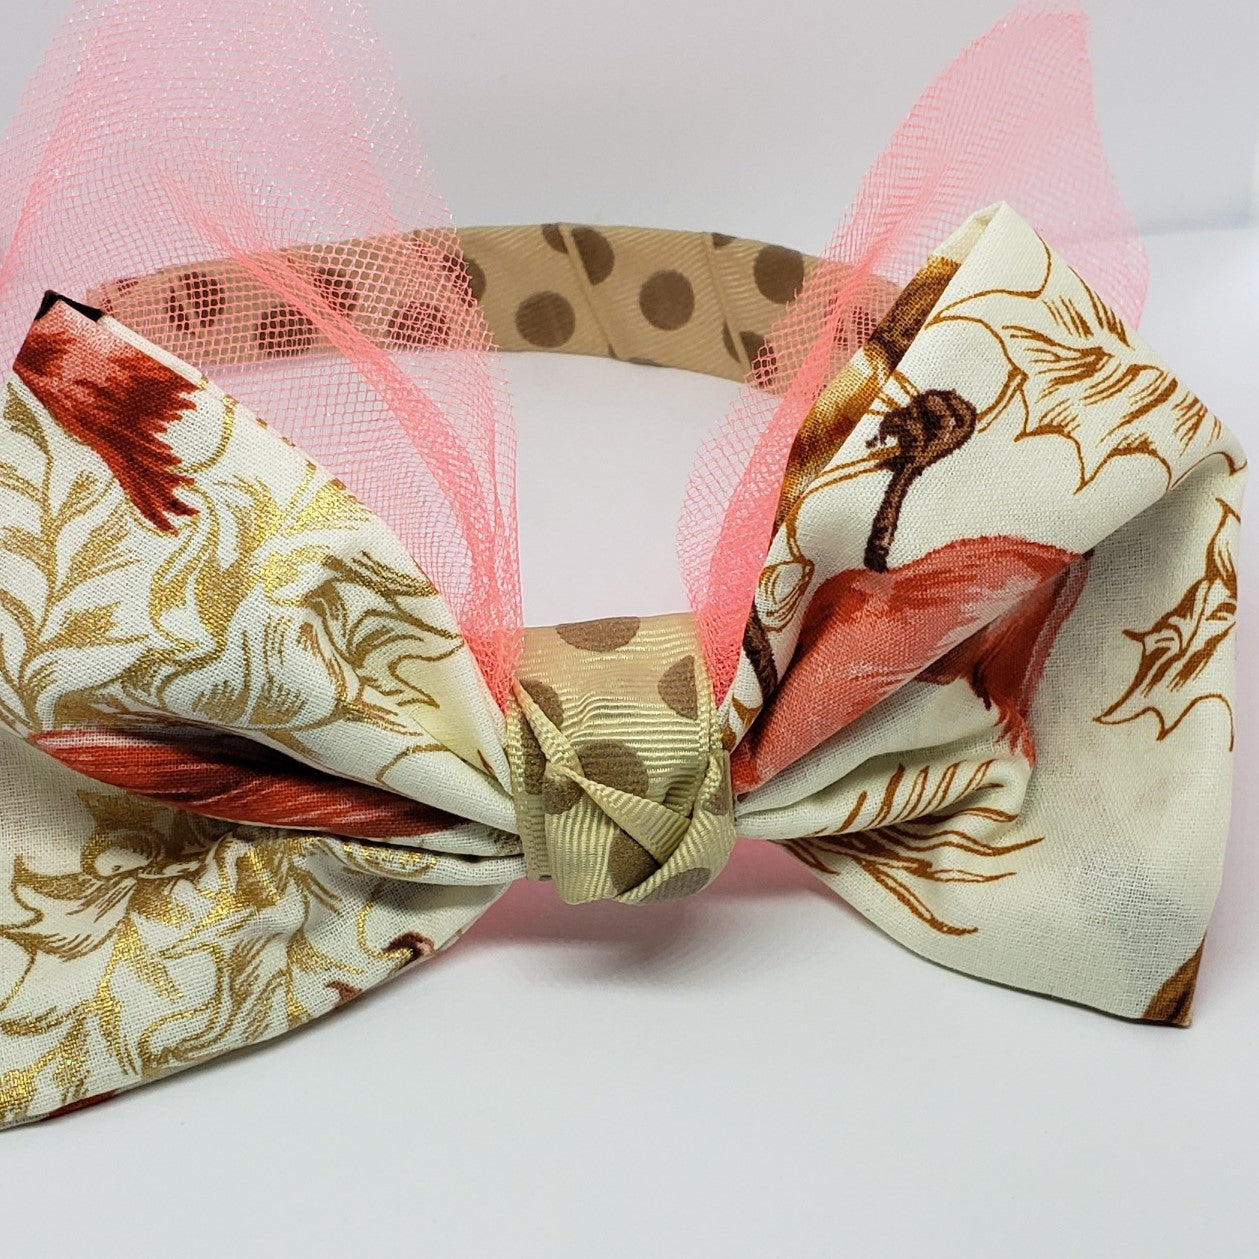 N-Zala Shades of Fall Headband in Taupe & Bright Coral - Houzz of DVA Boutique